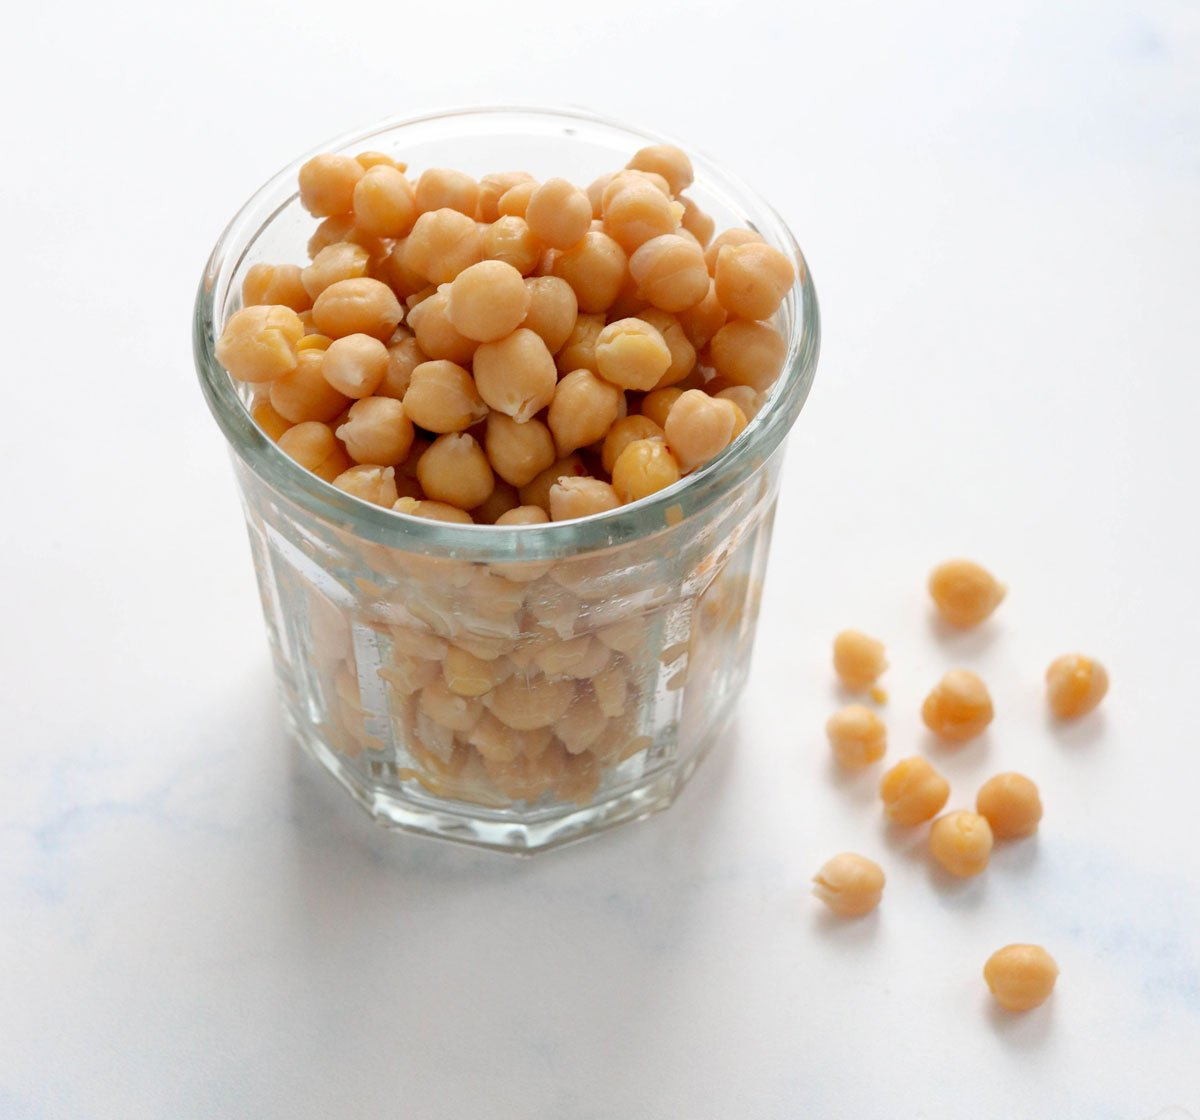 chickpeas in a glass jar